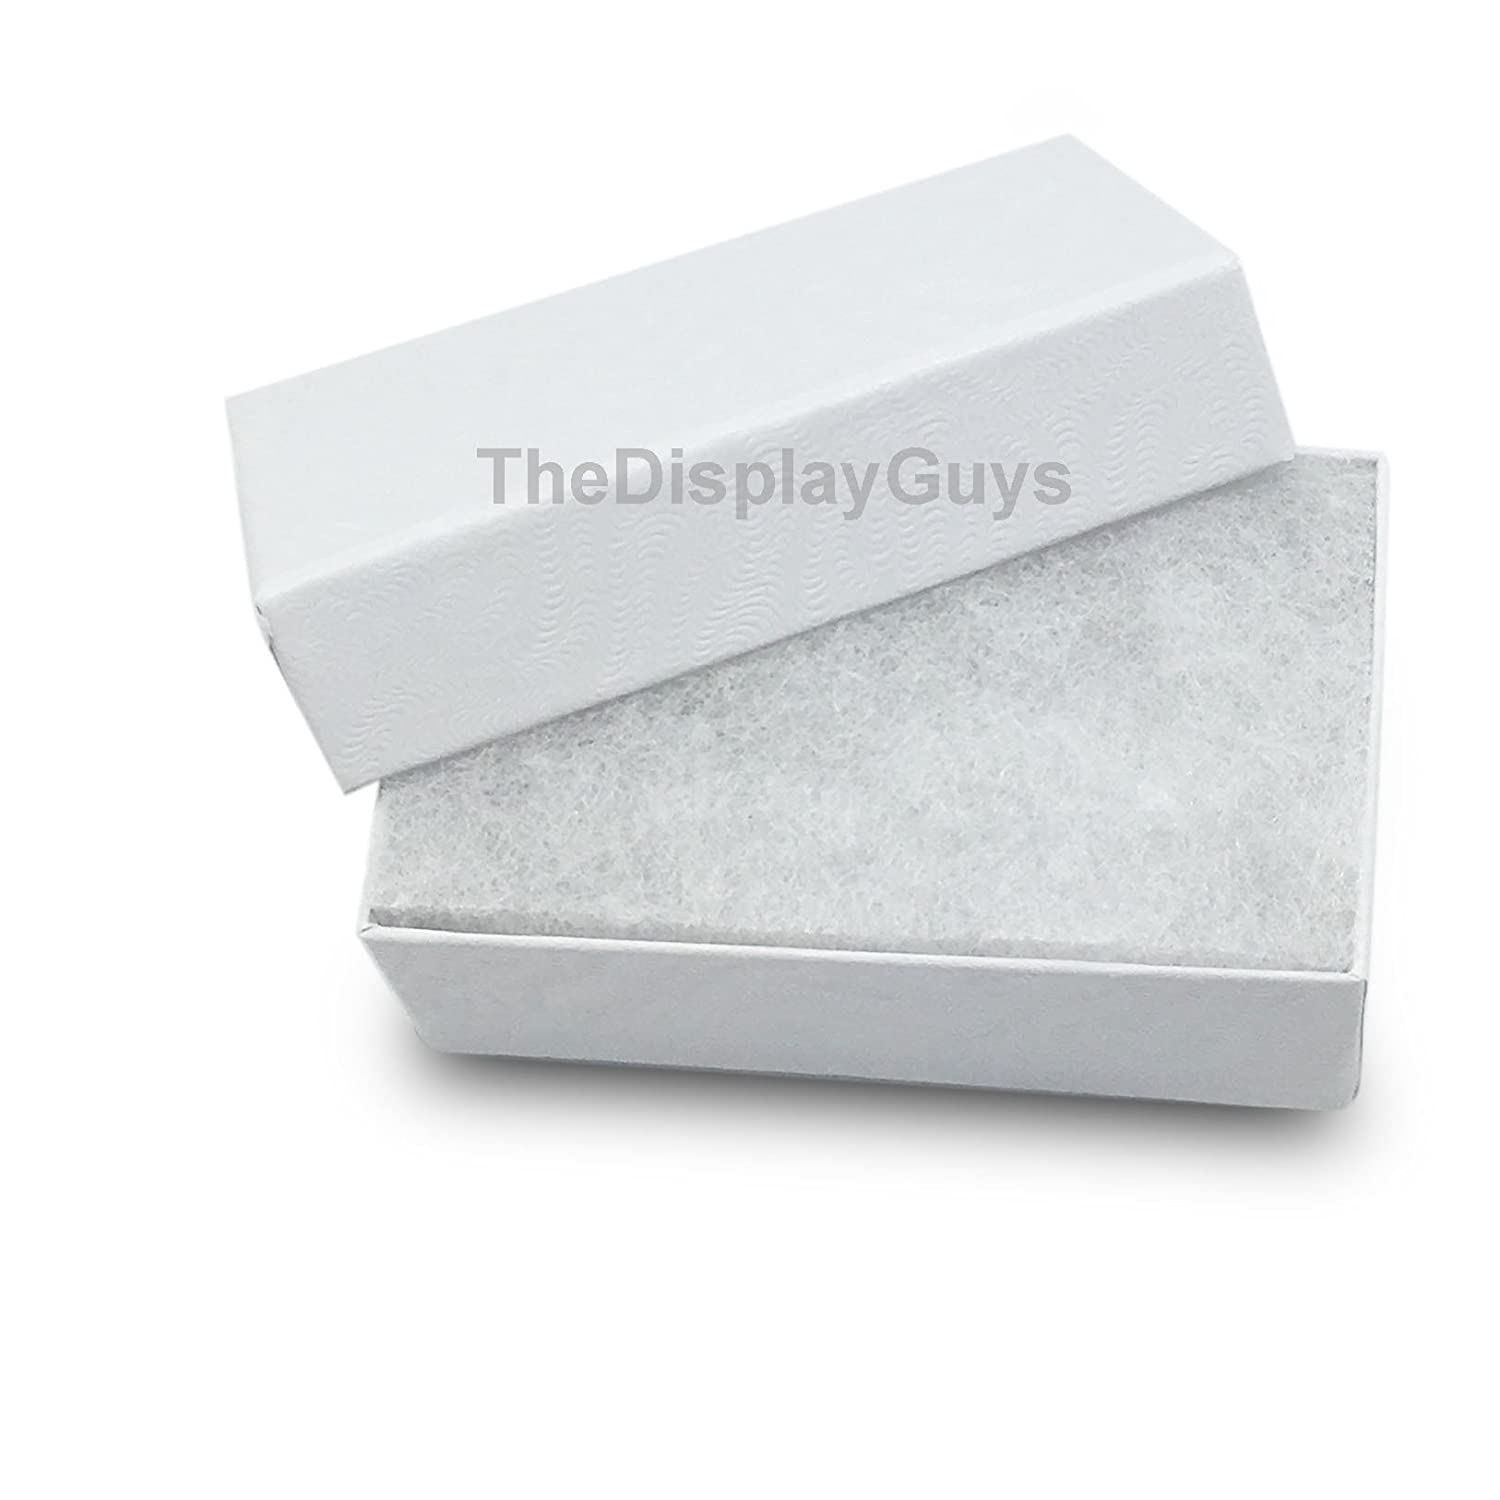 5 pcs Each of #11//#21//#32//#33//#82 The Display Guys Pack of 25 Cotton Filled Cardboard Paper White Jewelry Box Gift Case